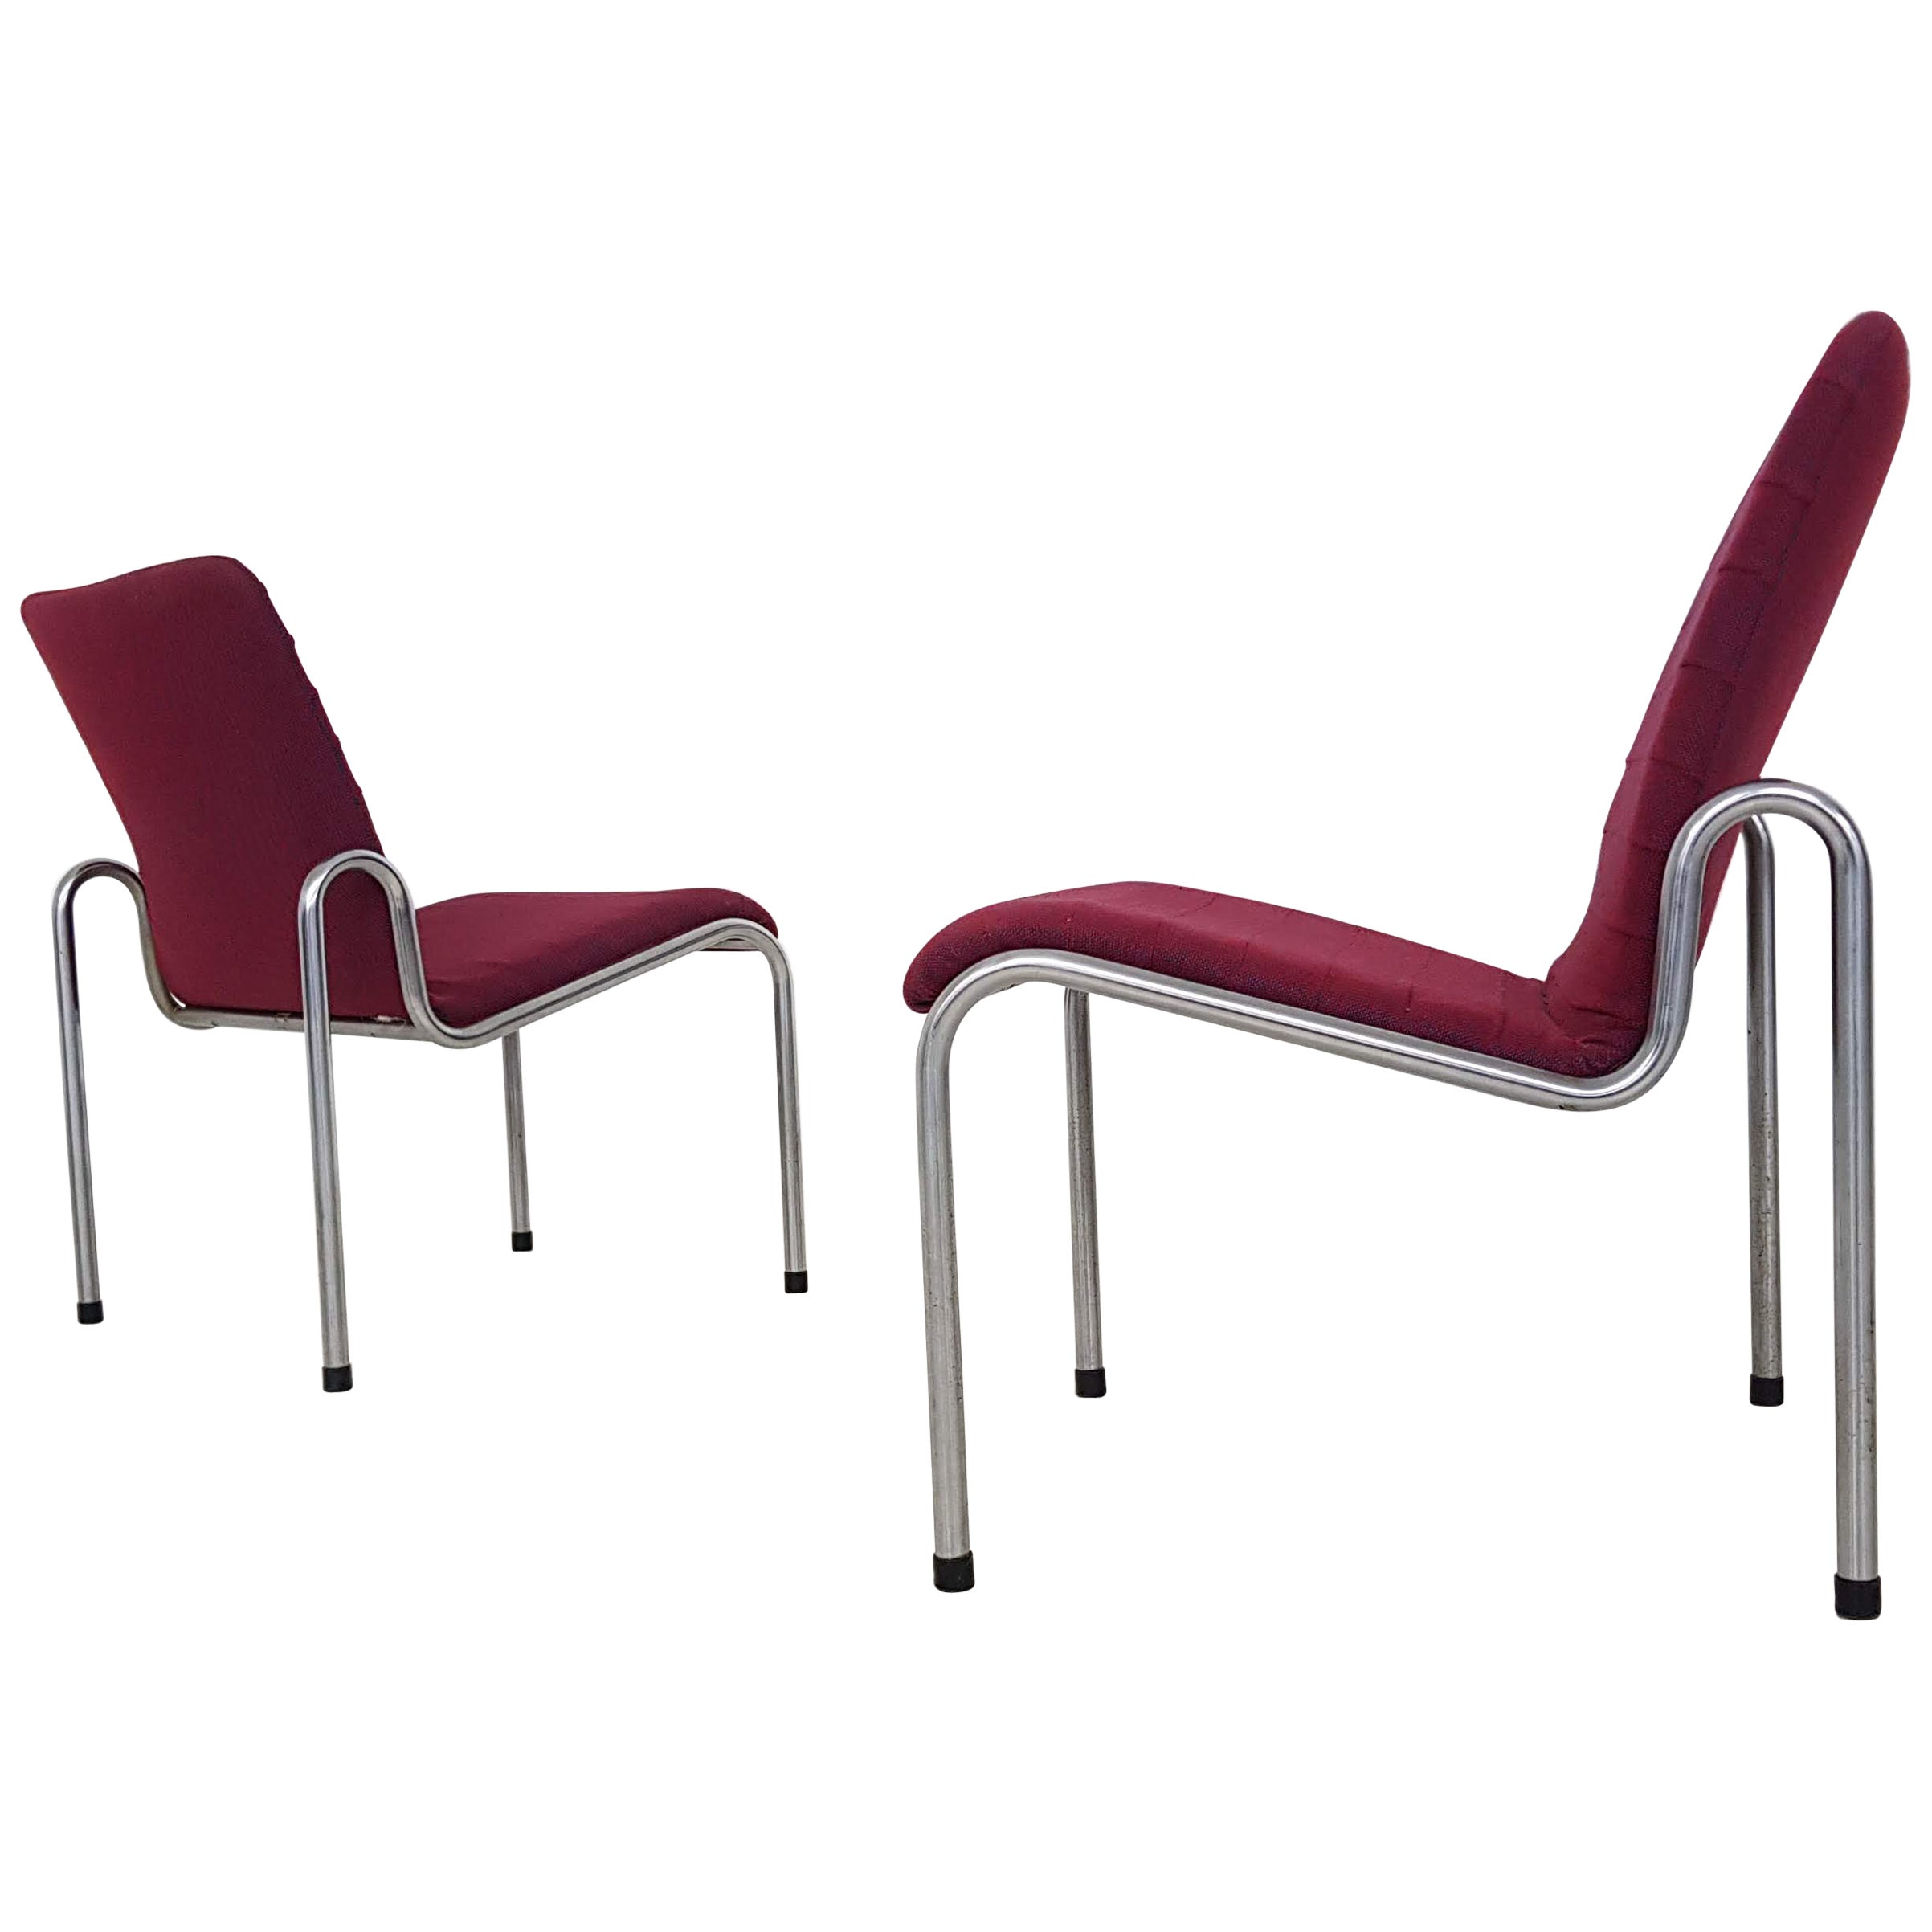 Kho Liang Ie for Stabin Lounge Chairs Model 703, the Netherlands, 1968